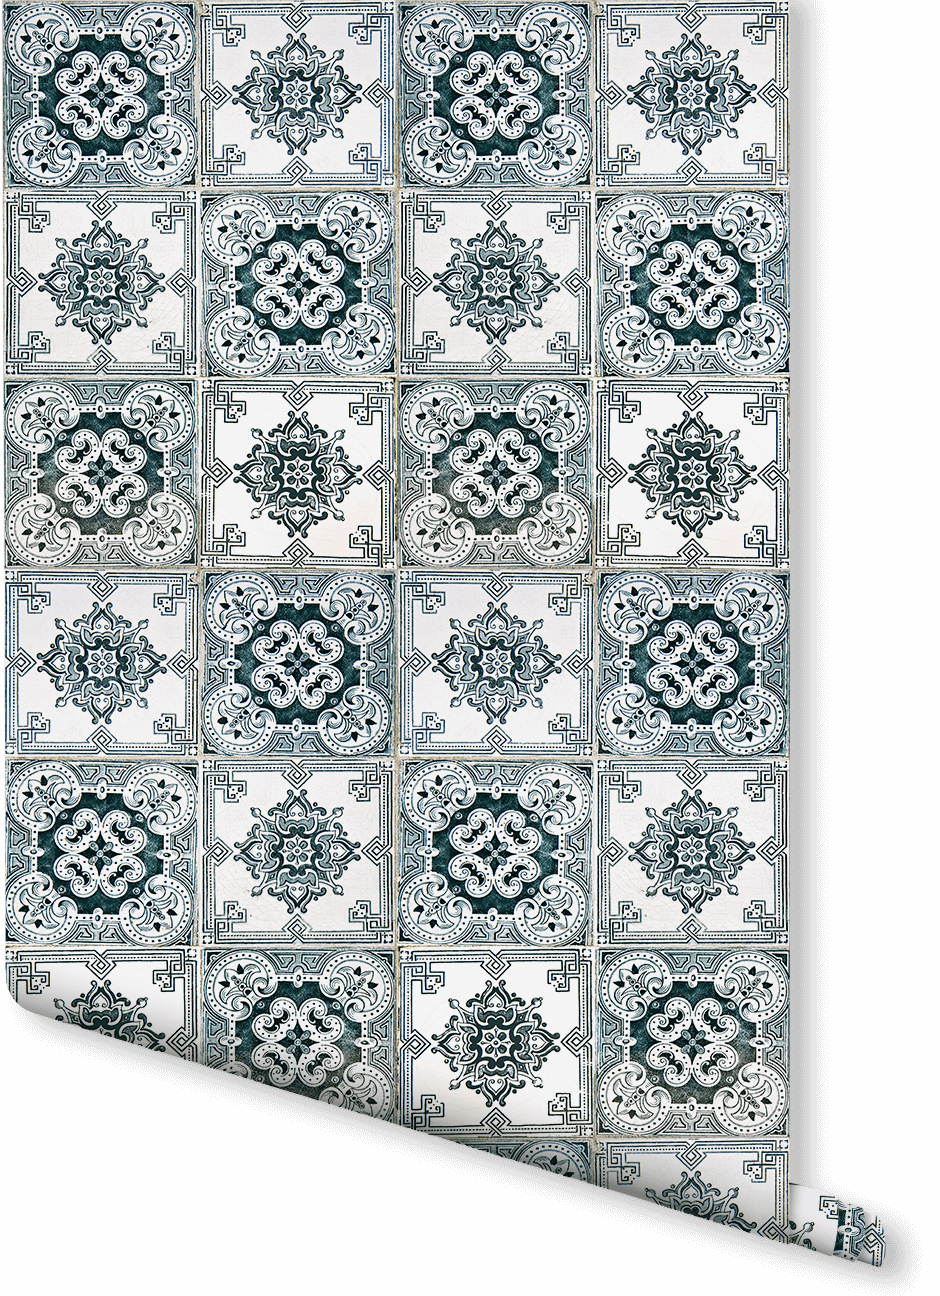 Transform Your Room With Elegant Baroque Design This Faux Tile Wallpaper Is Ideal For A